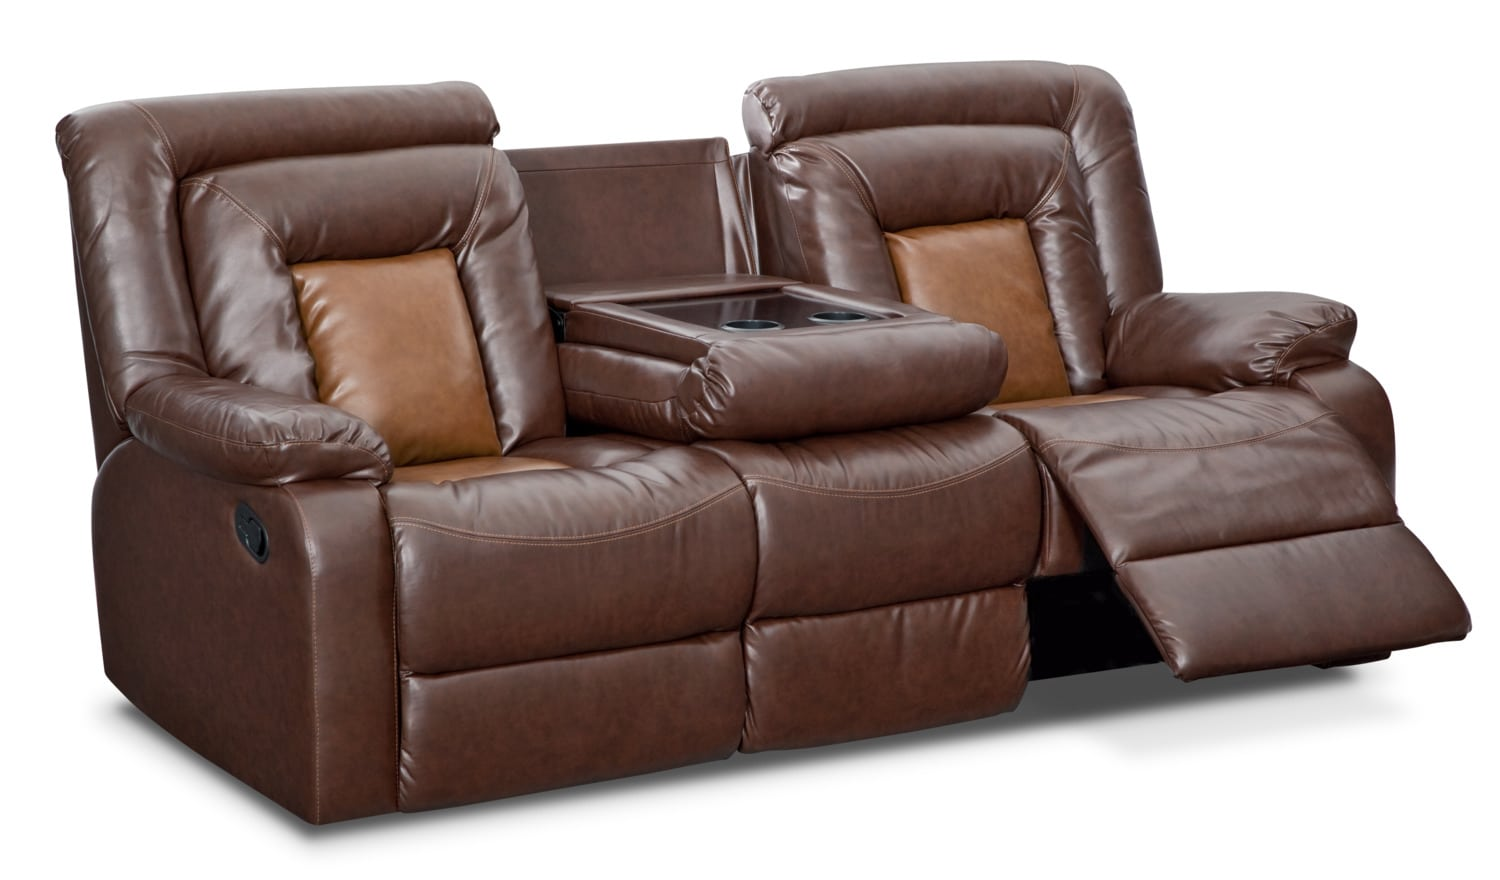 mustang dual reclining sofa with console brown value city rh valuecityfurniture com reclining sofa with console reclining sofa with console